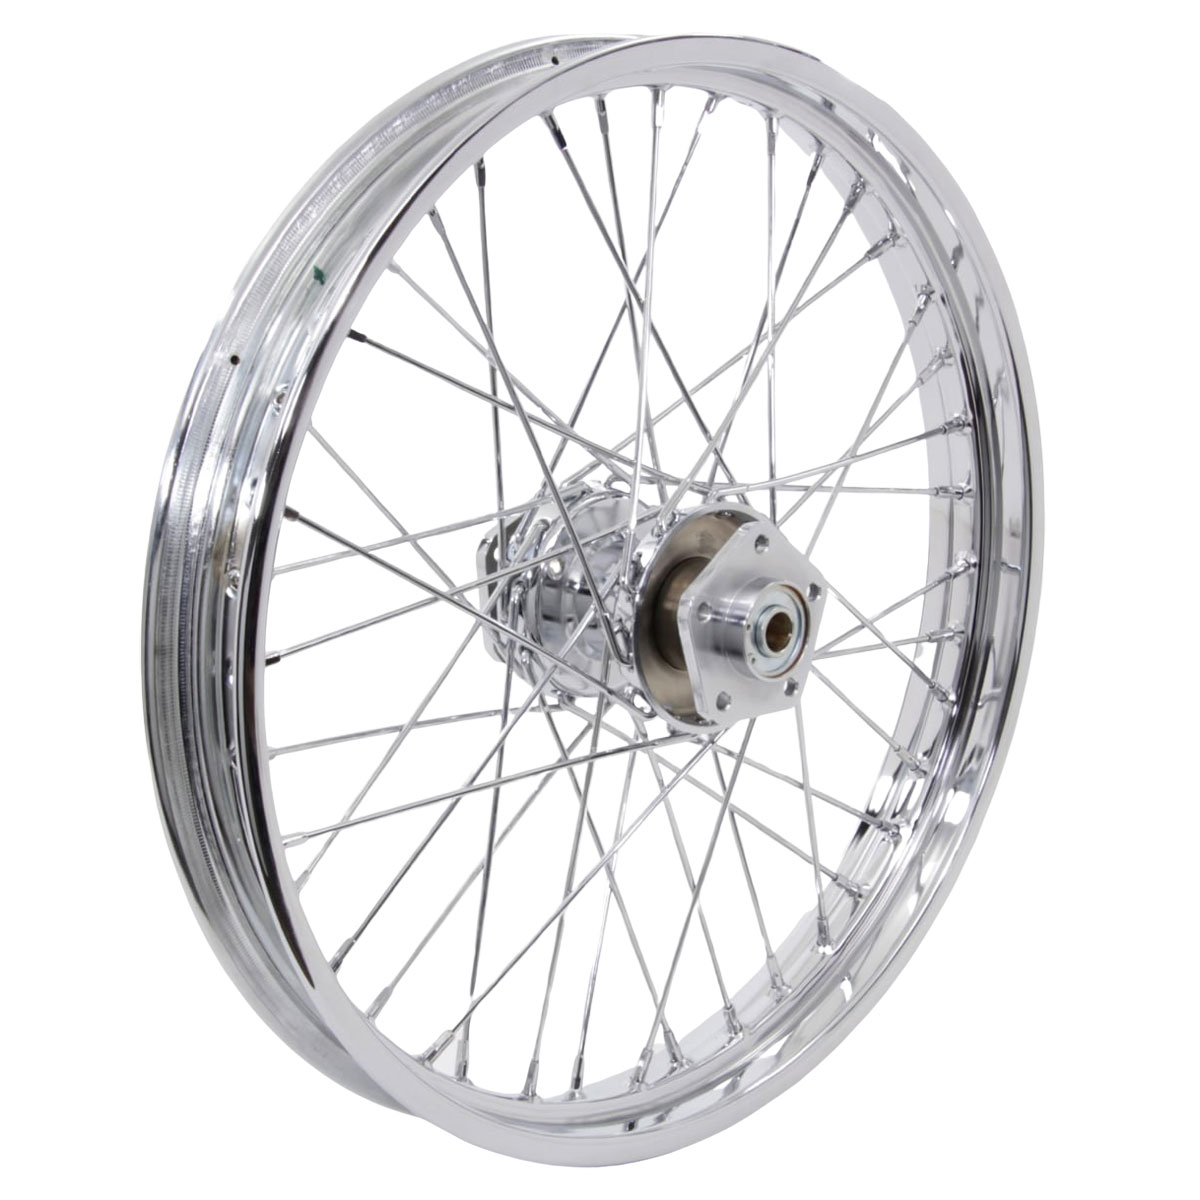 Chrome 40 Spoke Wheel, 21 x 2.15